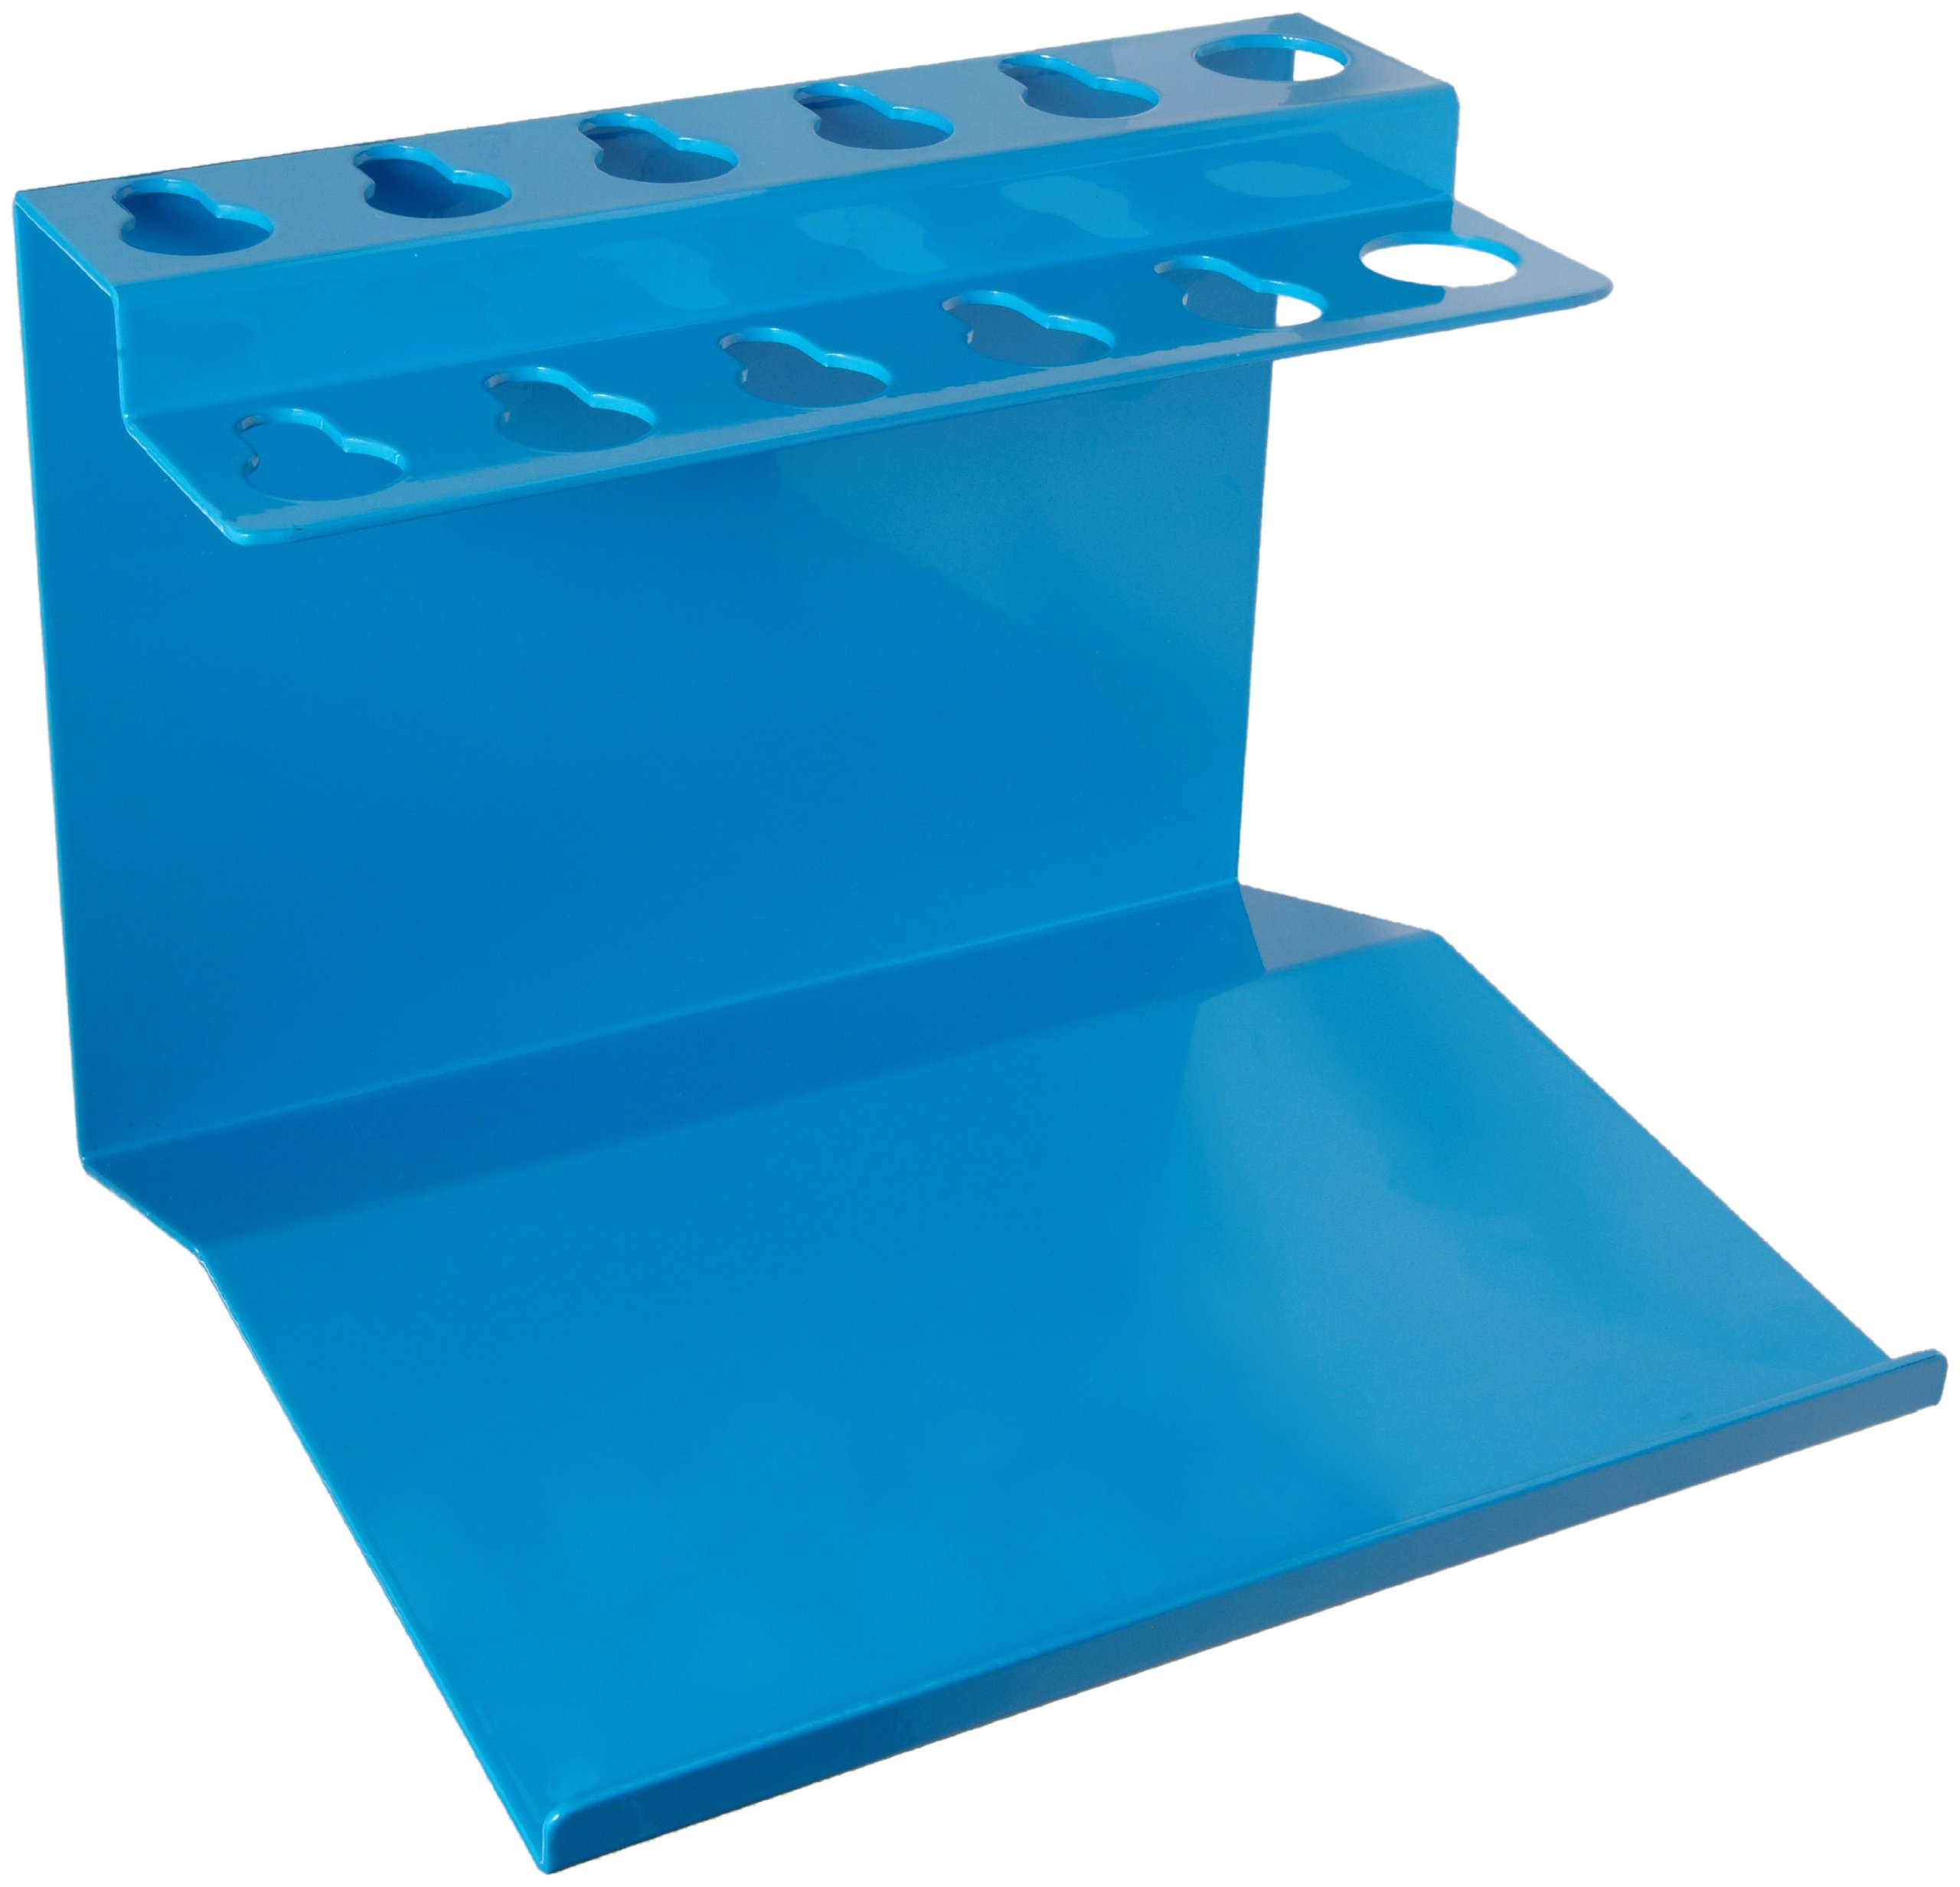 Bel-Art Poxygrid Aluminum Microliter Pipettor Rack for Gilson Pipetman with Extended Base (H18962-0004)